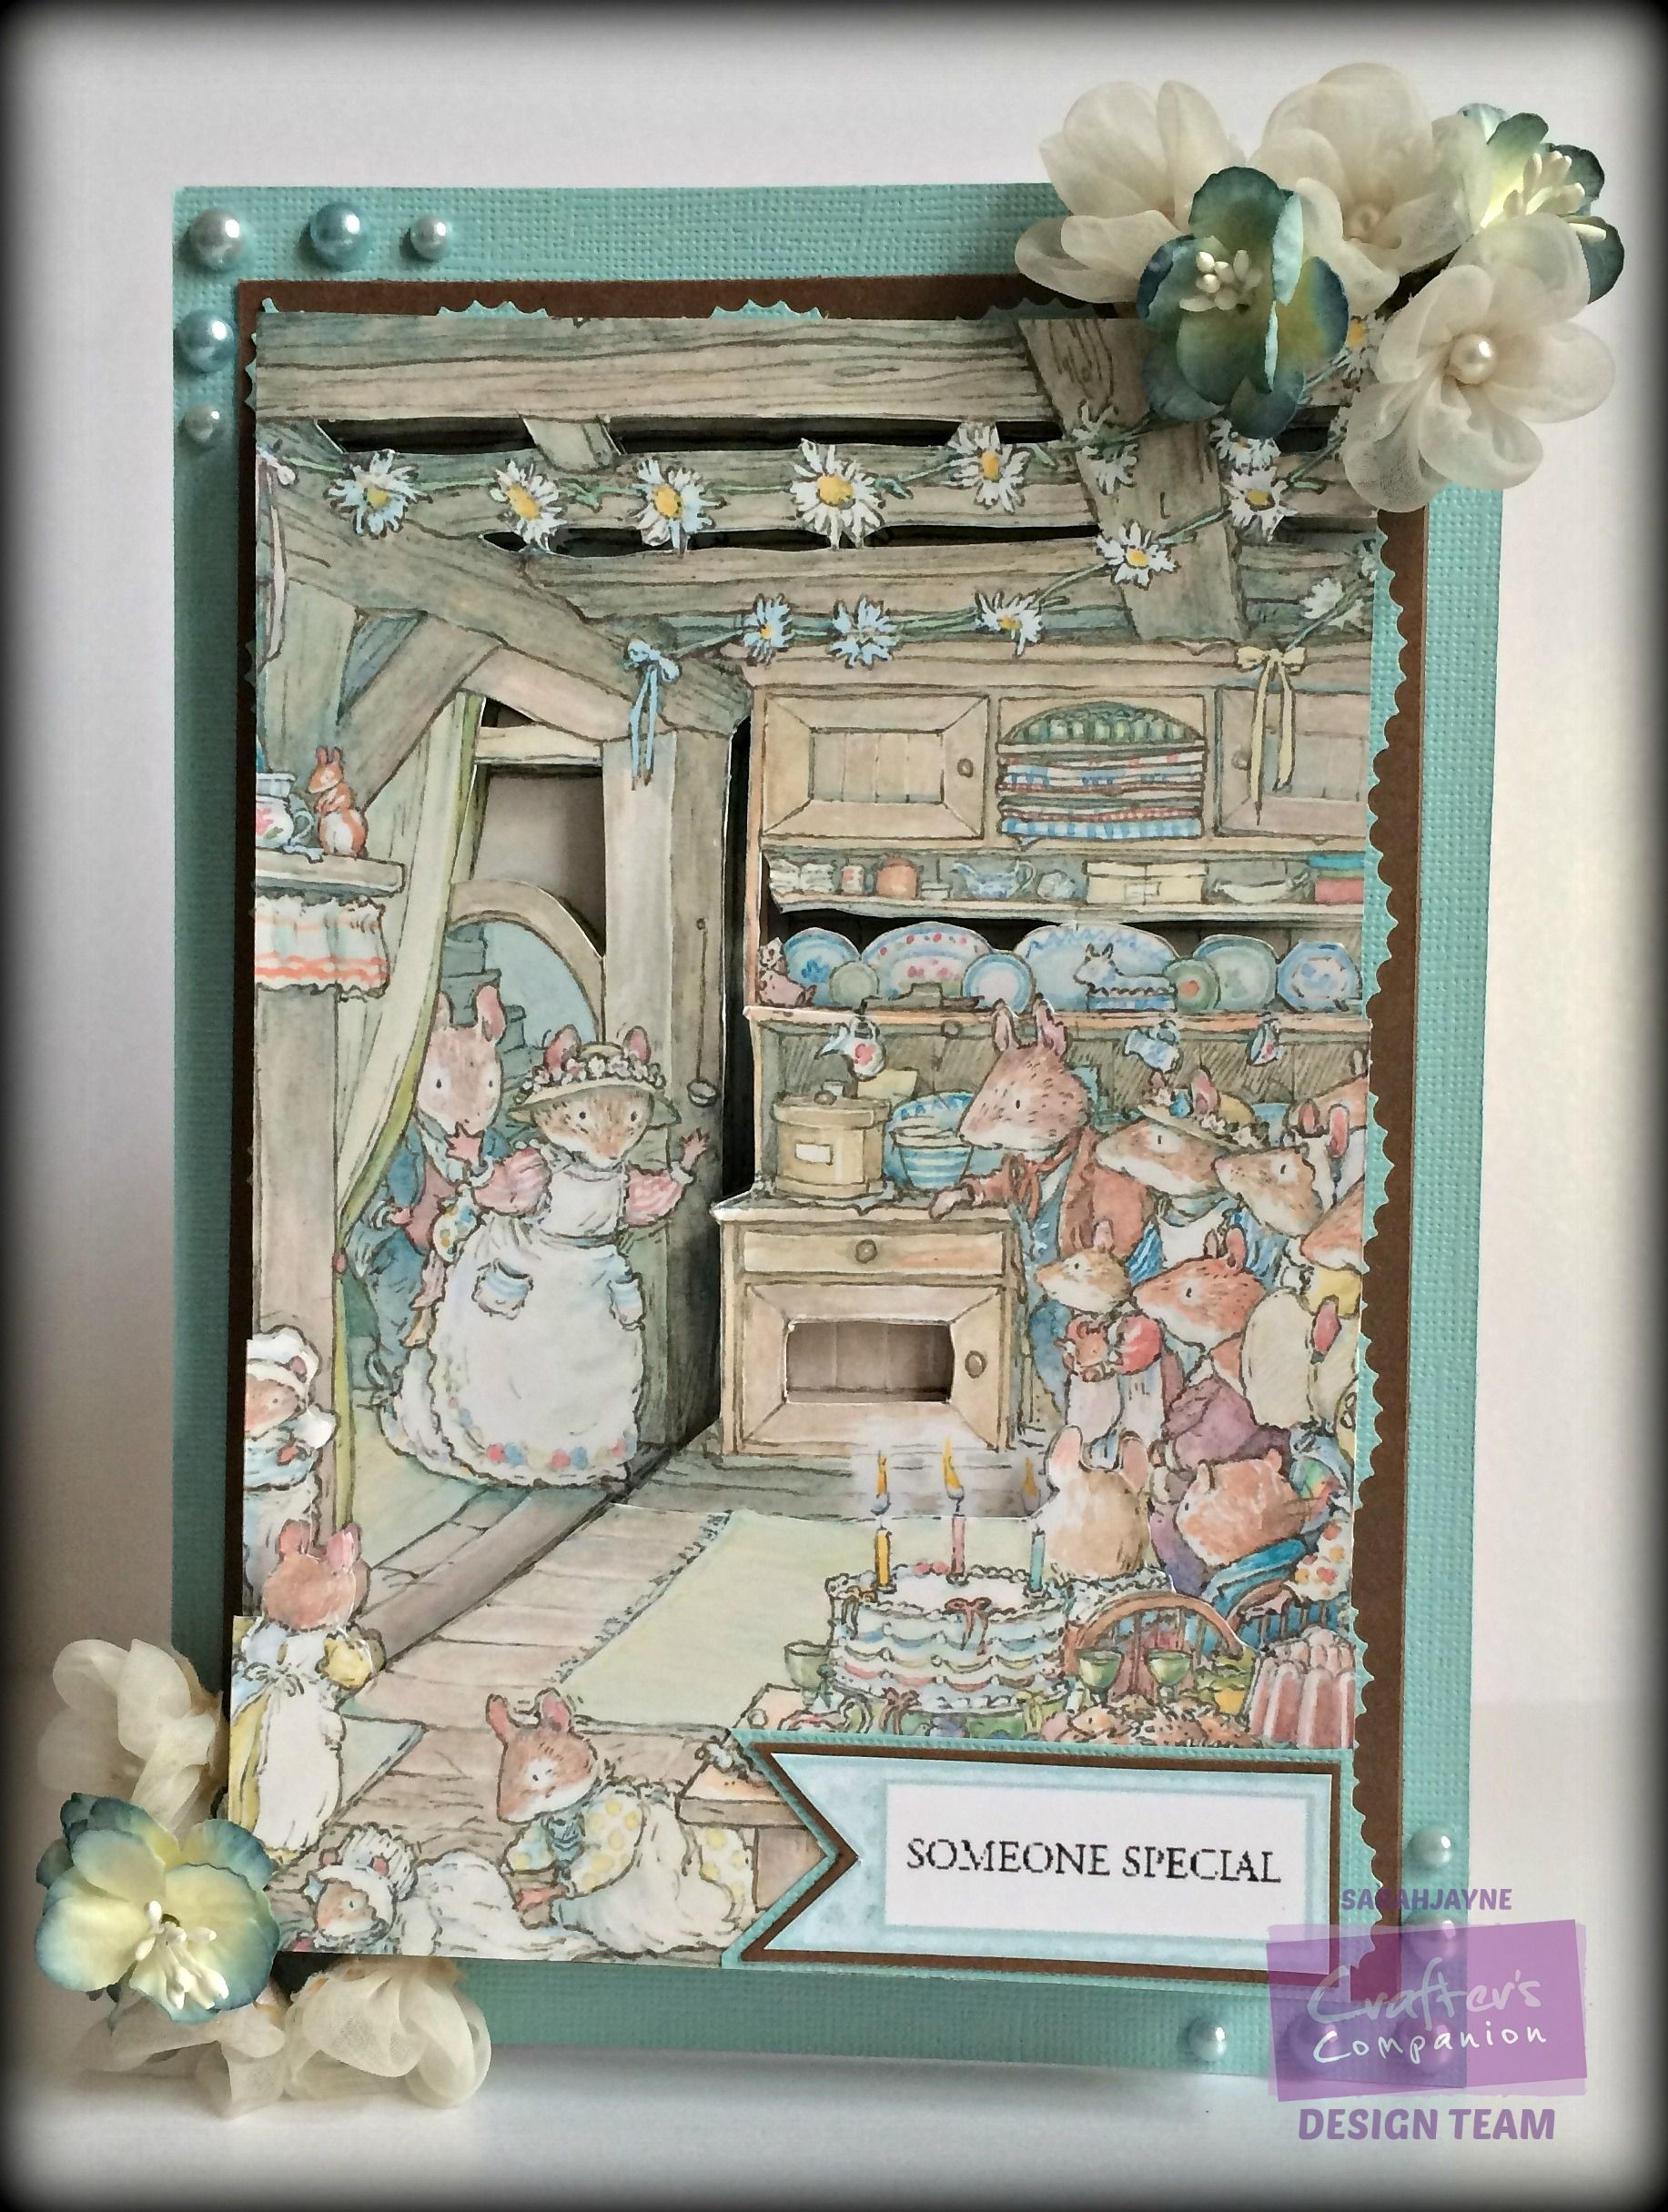 Brambly Hedge Poppys Babies & the secret staircase CD 3d Decor companions  Design 3 Sentiment design 2 Colorcore card stock Collall 3d Gel Collall all  ...